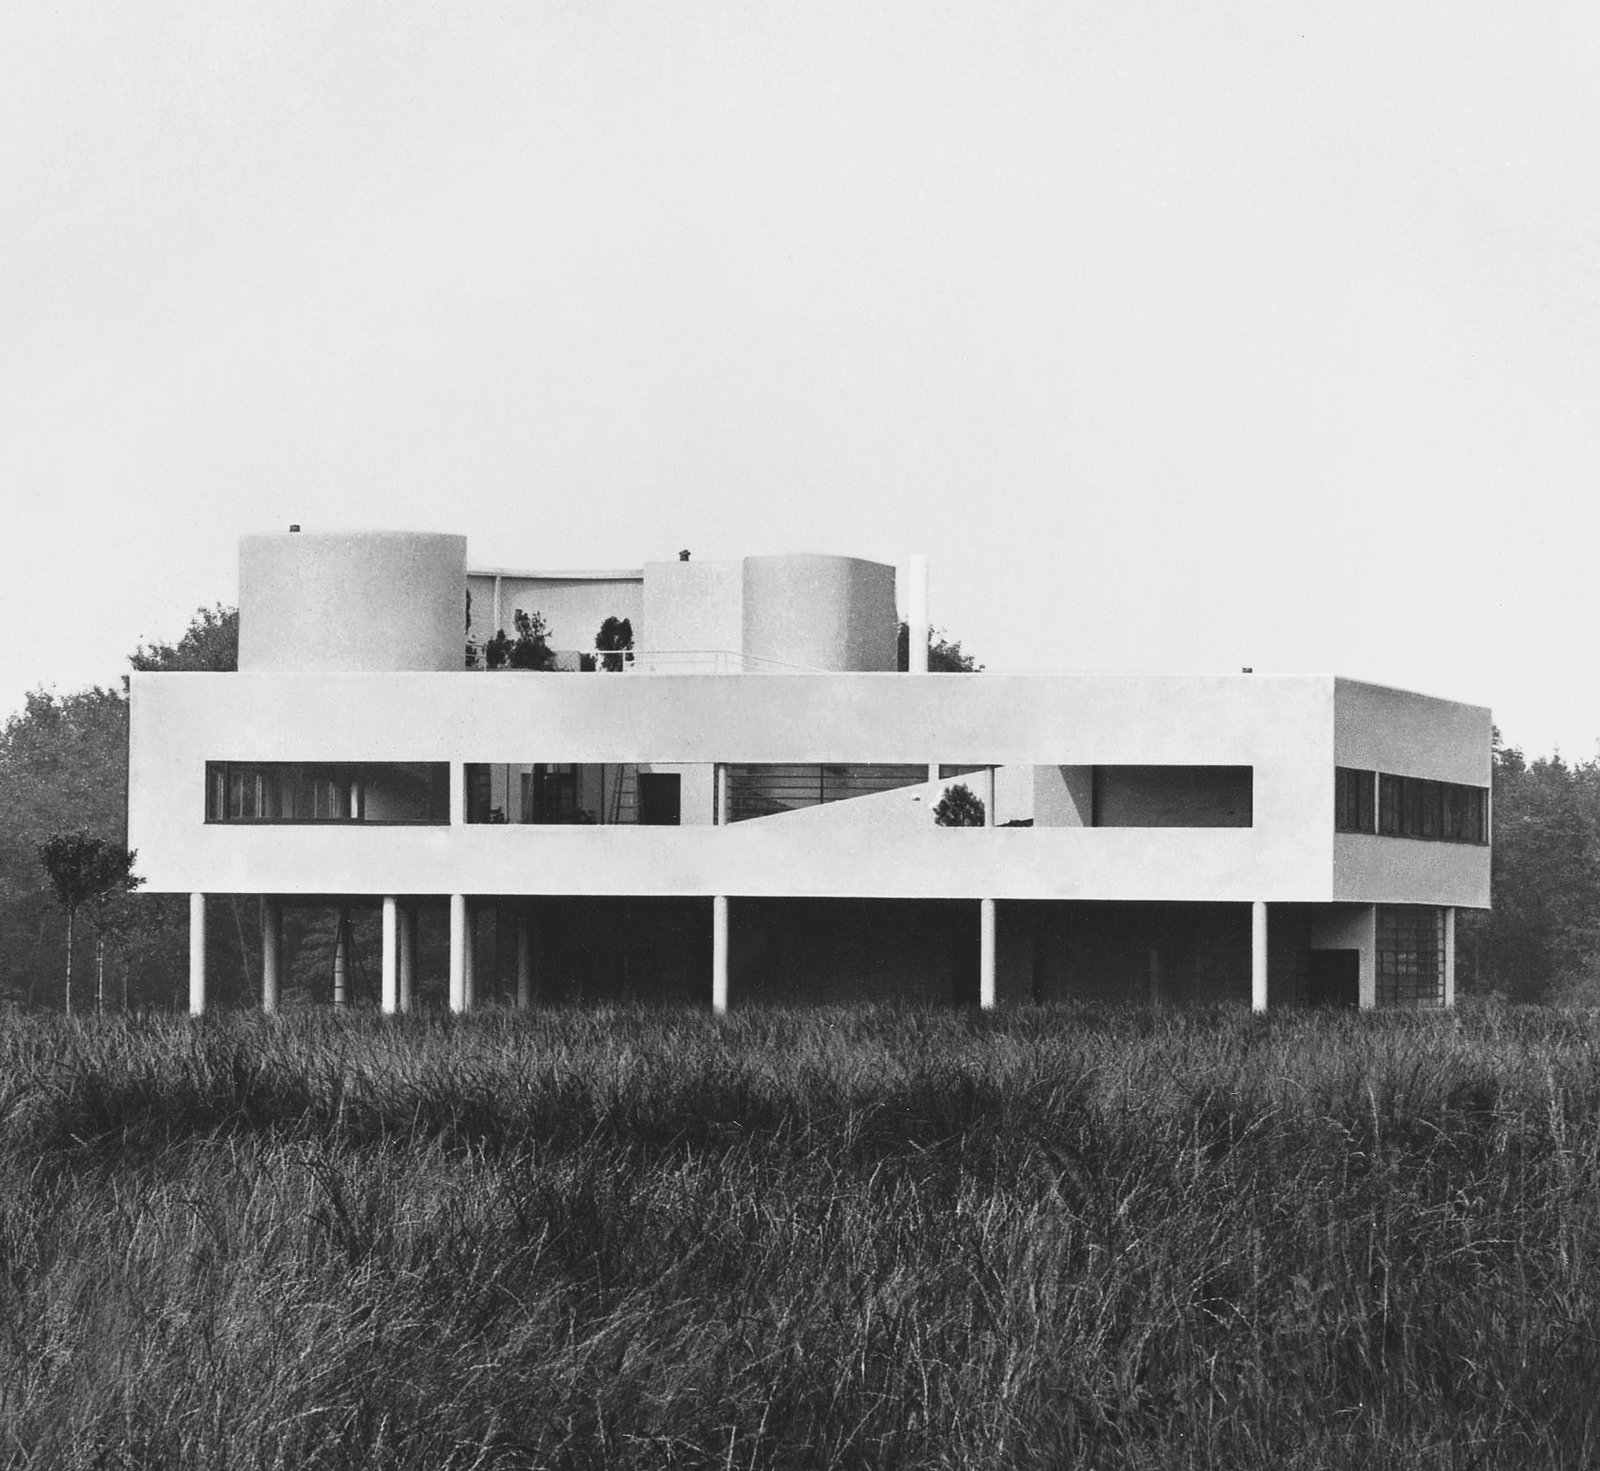 Le Corbusier: Villa Savoye in Poissy, France, 1928-1931  Photo 4 of 11 in Dive Into a Visually Stunning Book That Celebrates Modernist Architecture and its Evolution